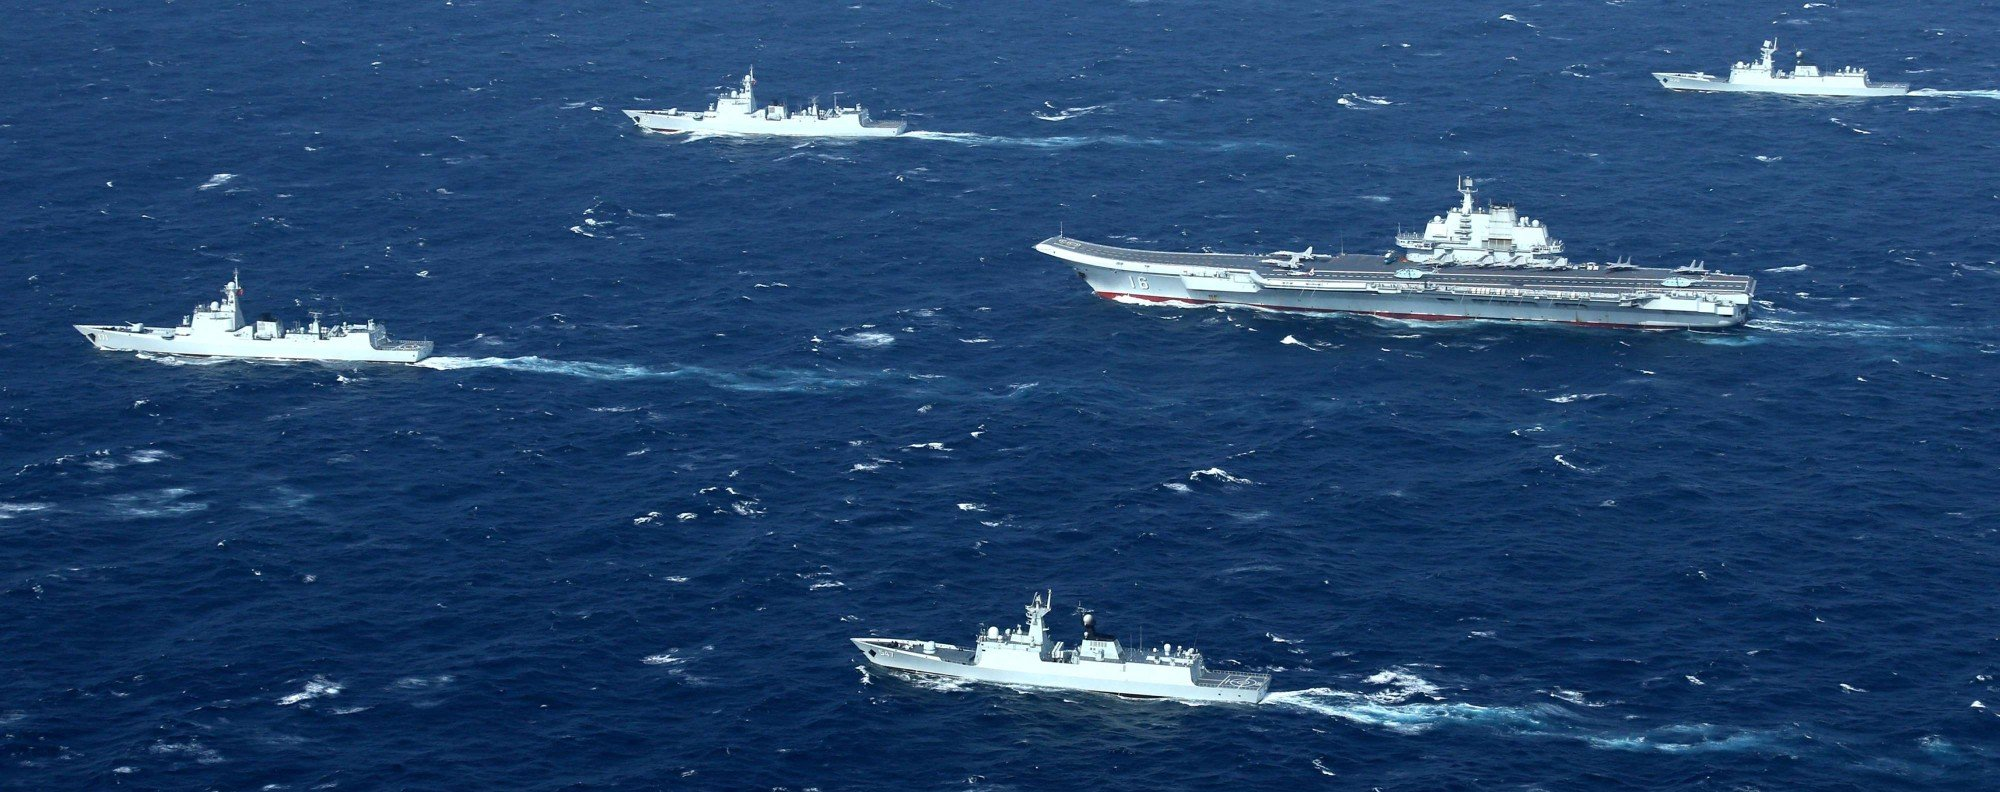 China's aircraft carrier, the Liaoning, in the South China Sea. Photo: Reuters